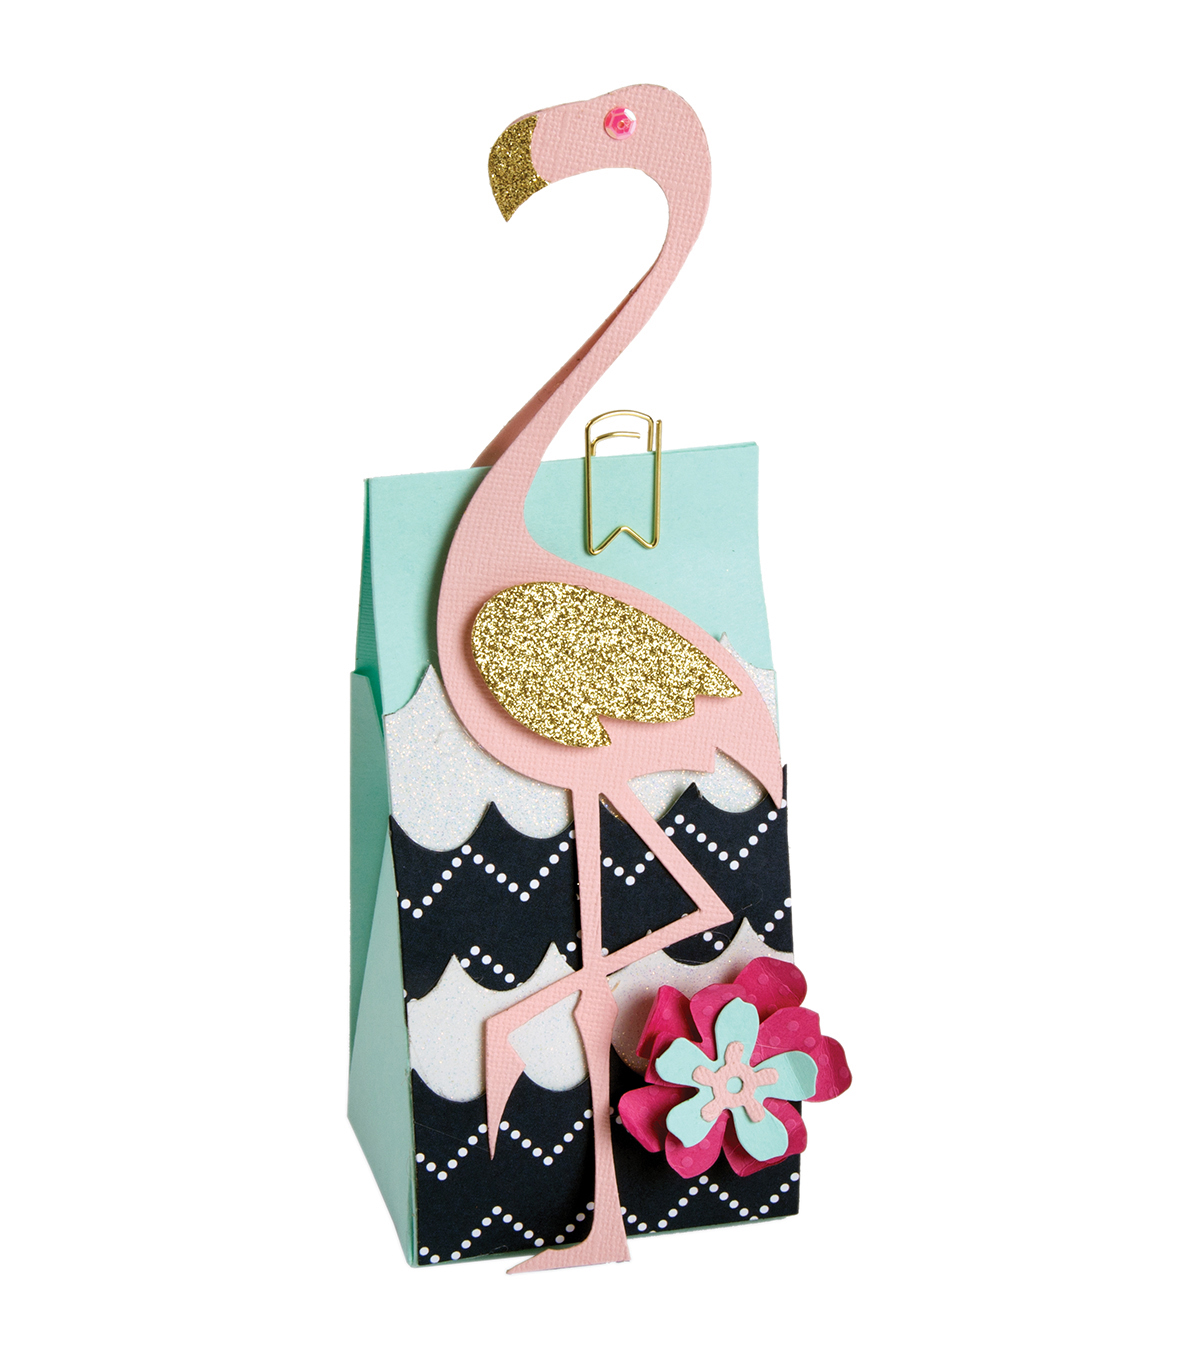 Sizzix Bigz Big Shot Pro Die-Flamingo Bag